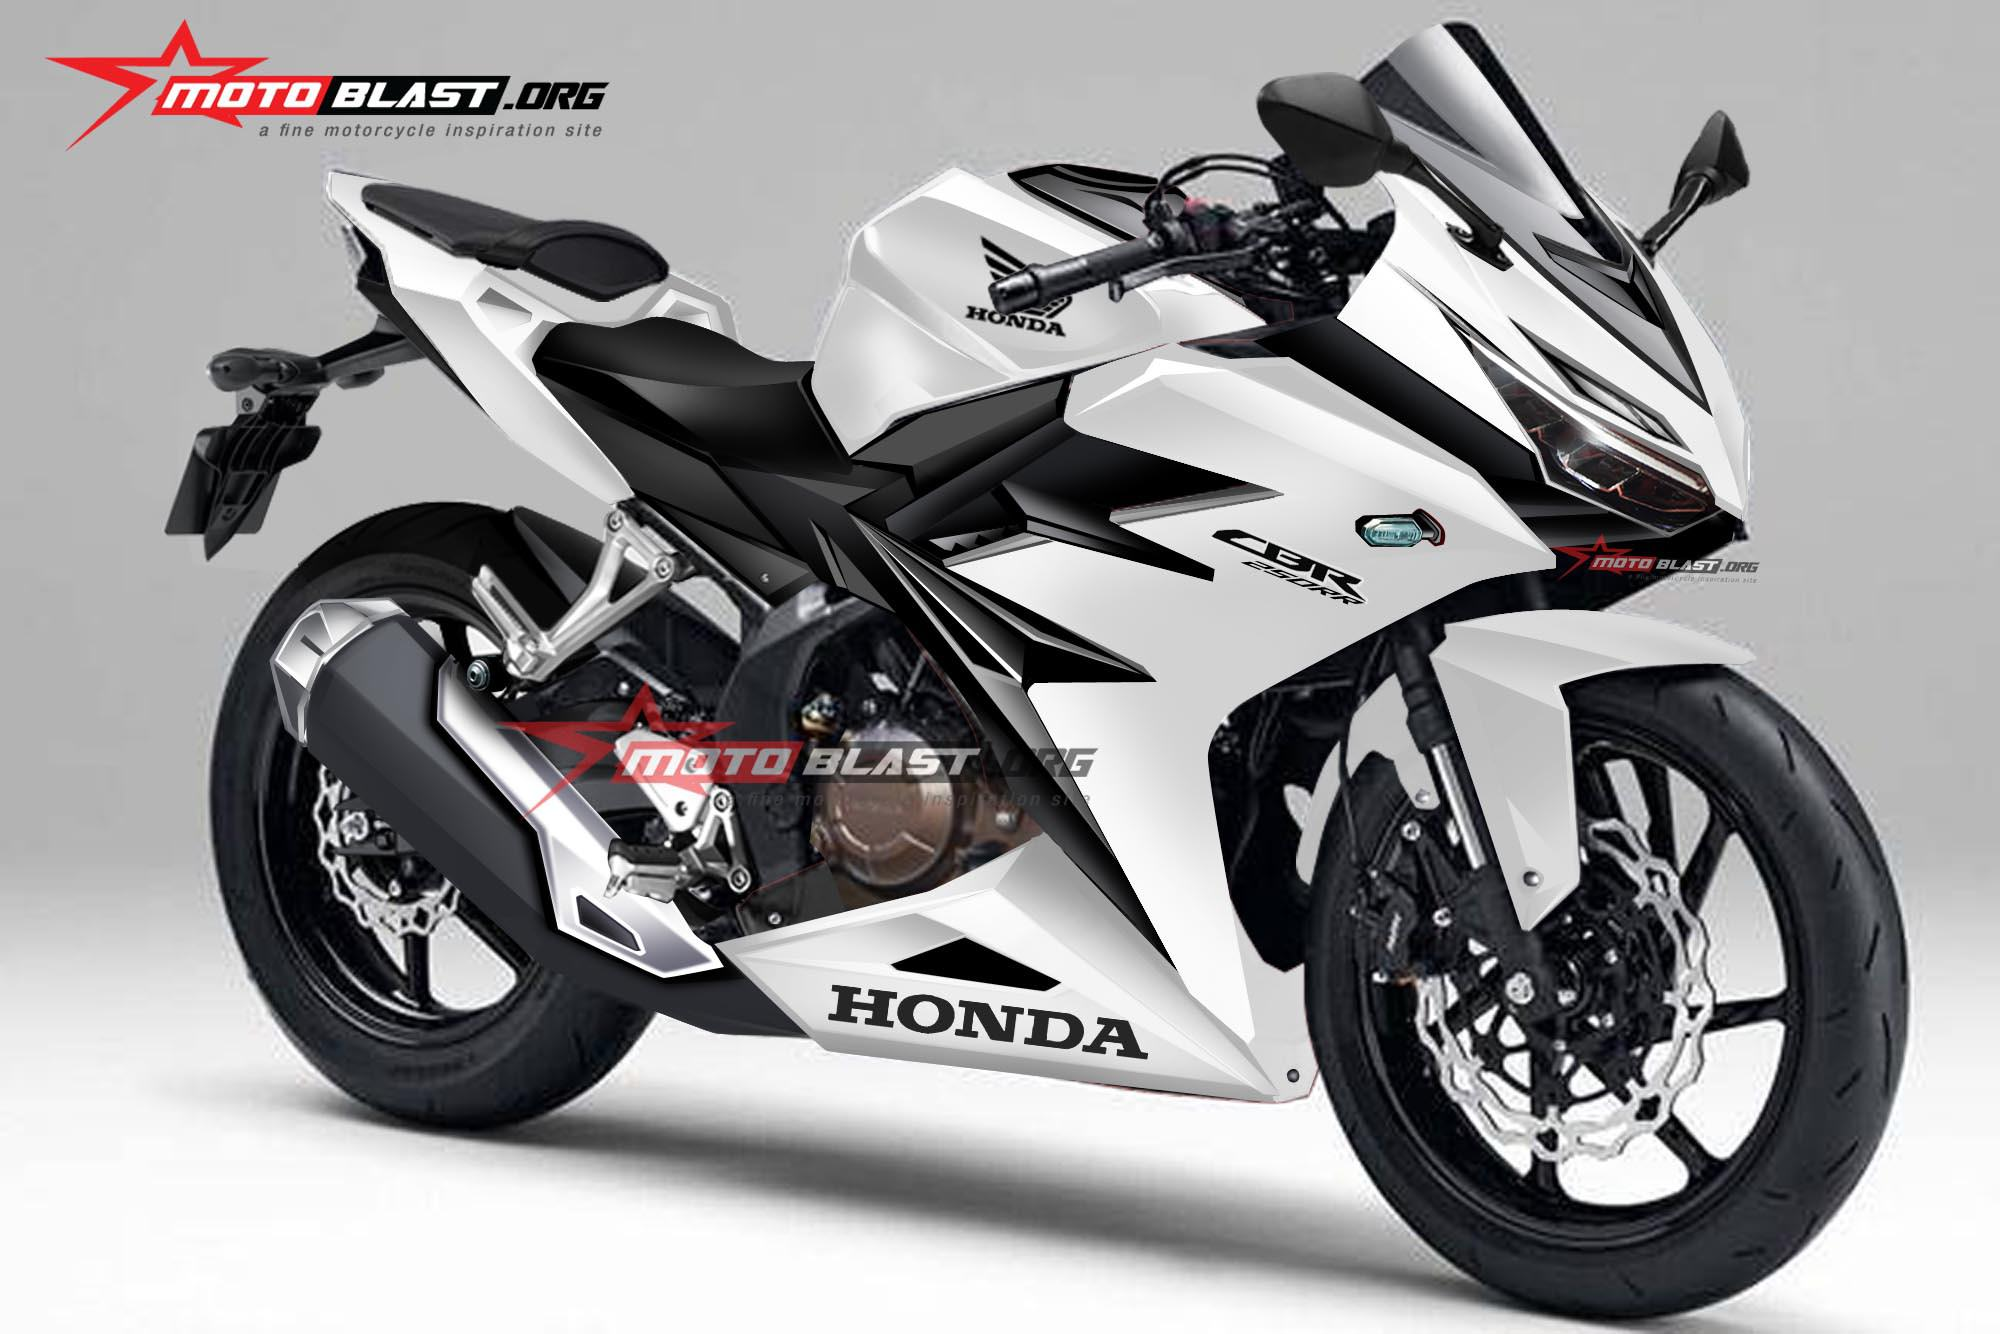 hight resolution of new 2017 honda cbr pictures could this be the one cbr 600 f4 wiring diagram 2005